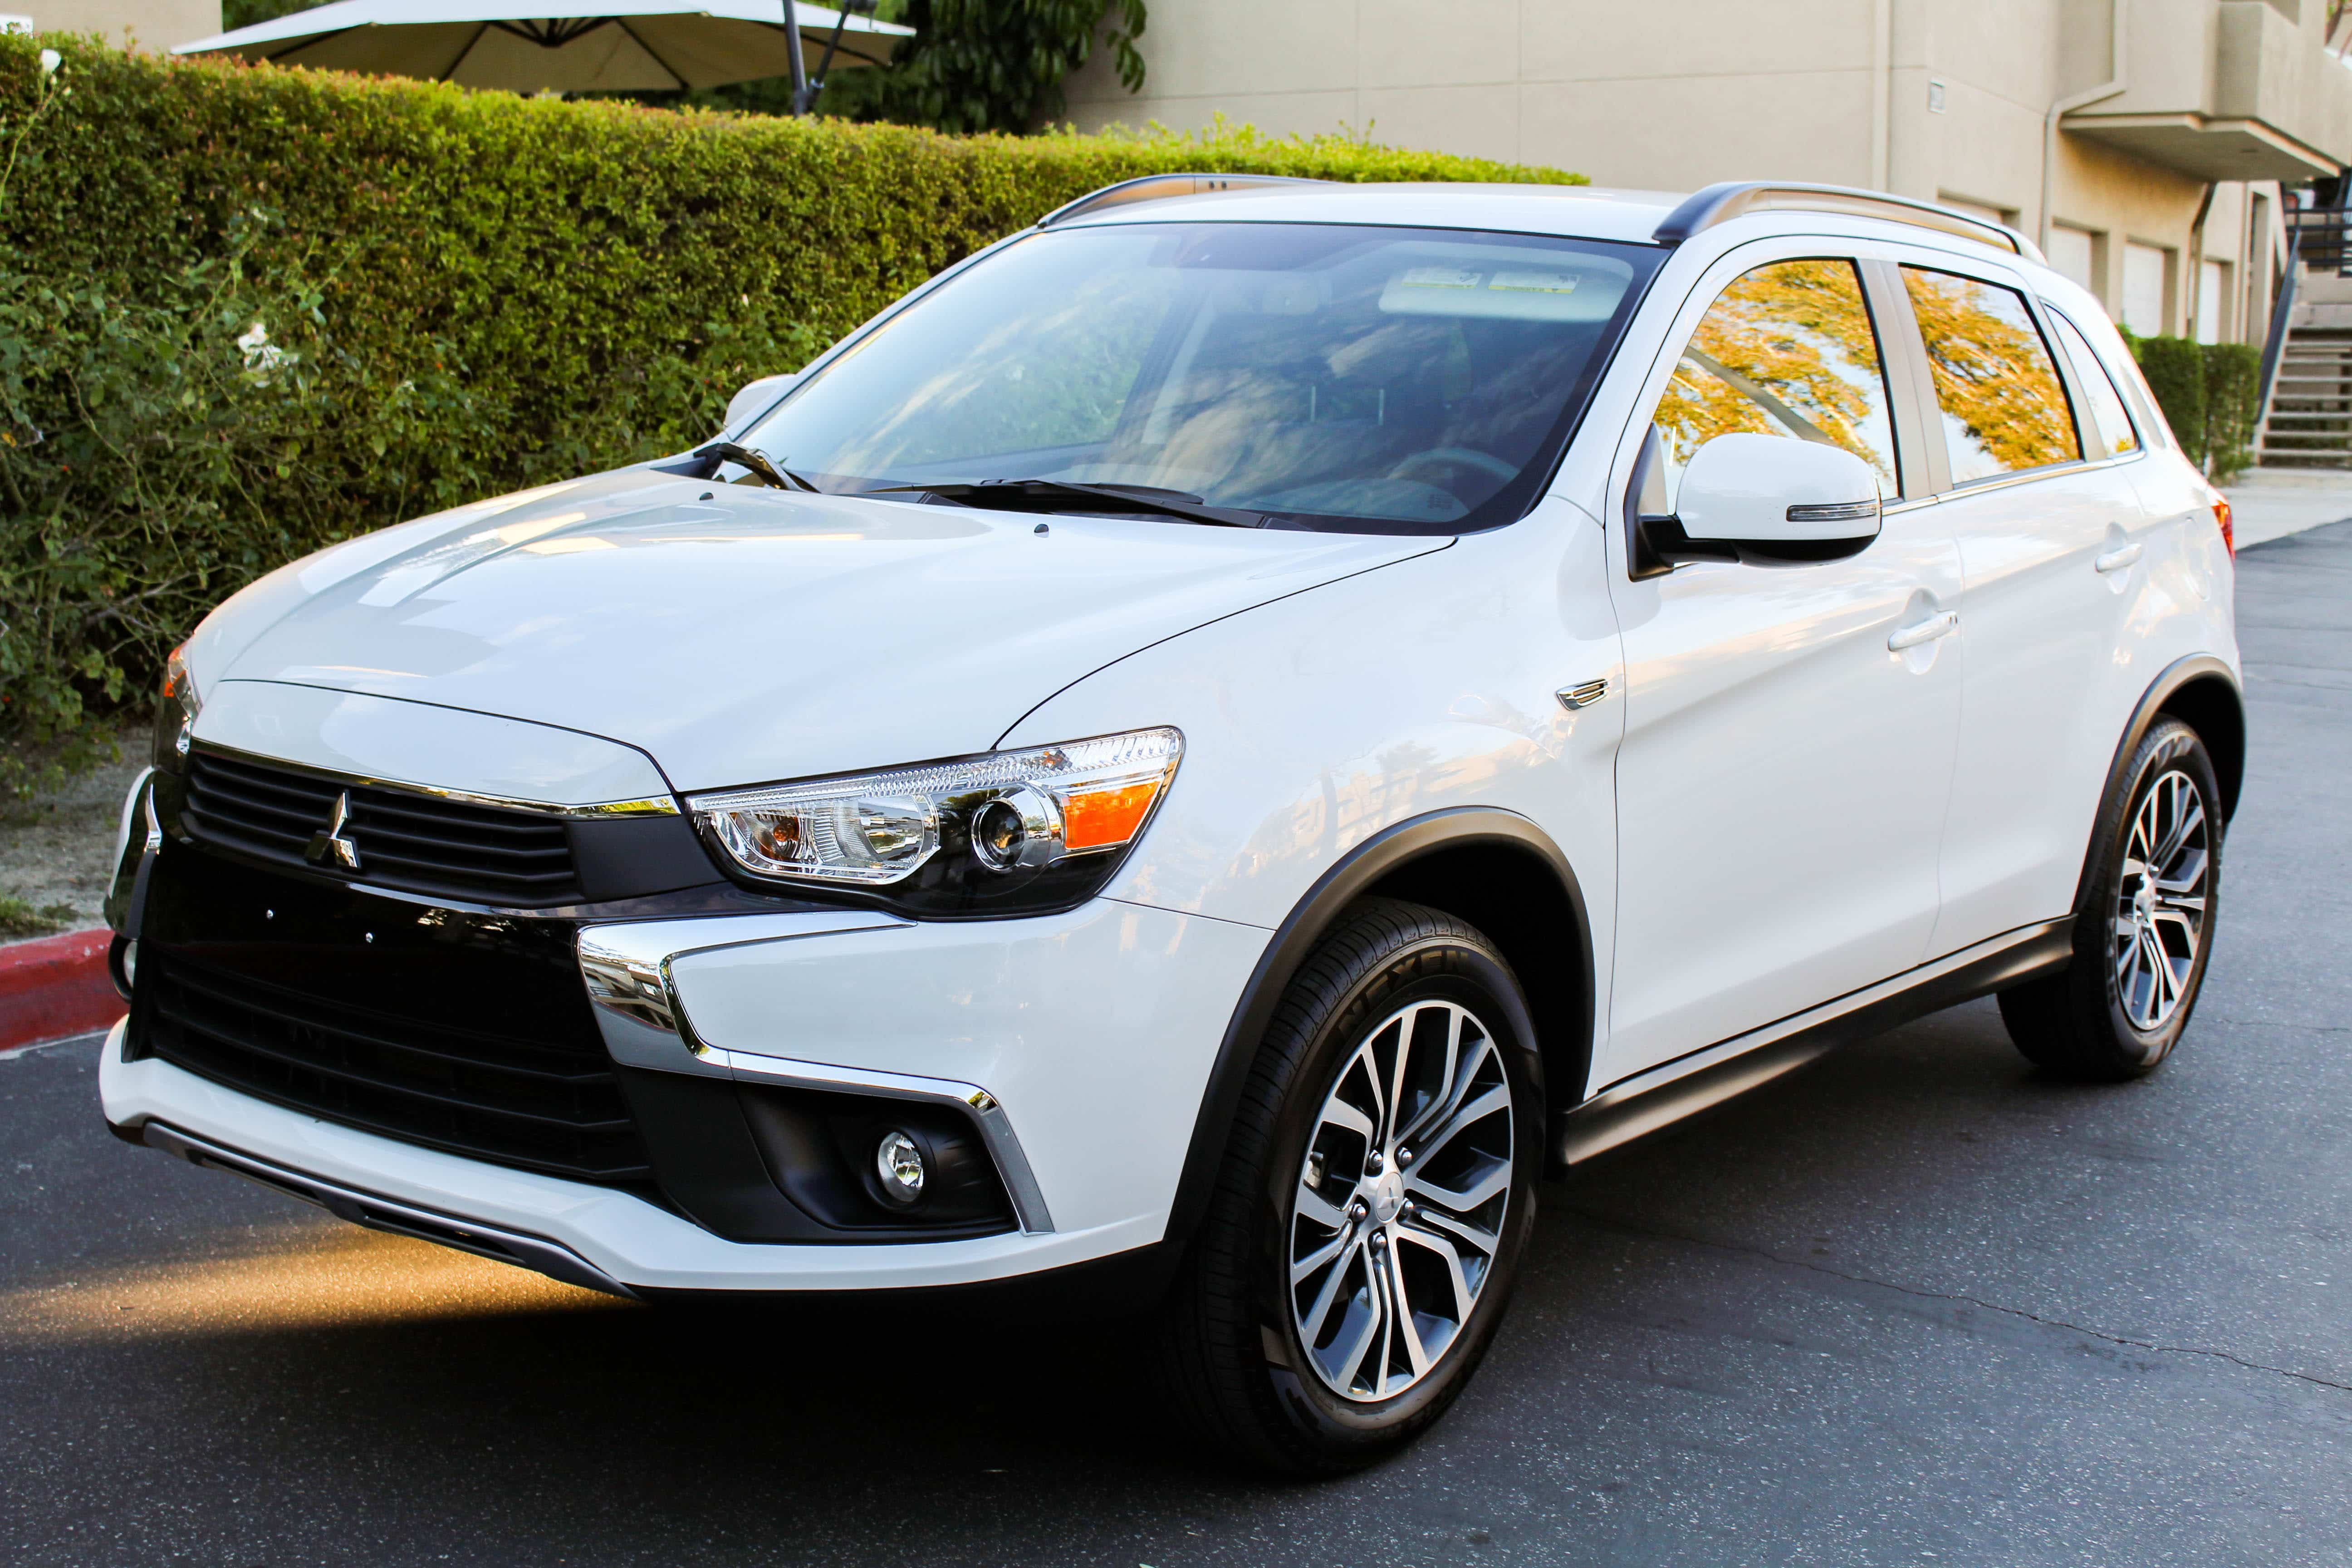 Imagine driving a vehicle that is as sleek on the inside as the outside. Meet the all new 2017 Mitsubishi Outlander Sport - a vehicle that has everything you want, plus some. It's the perfect vehicle not only for road trips, but for every day tasks such as picking up the groceries.